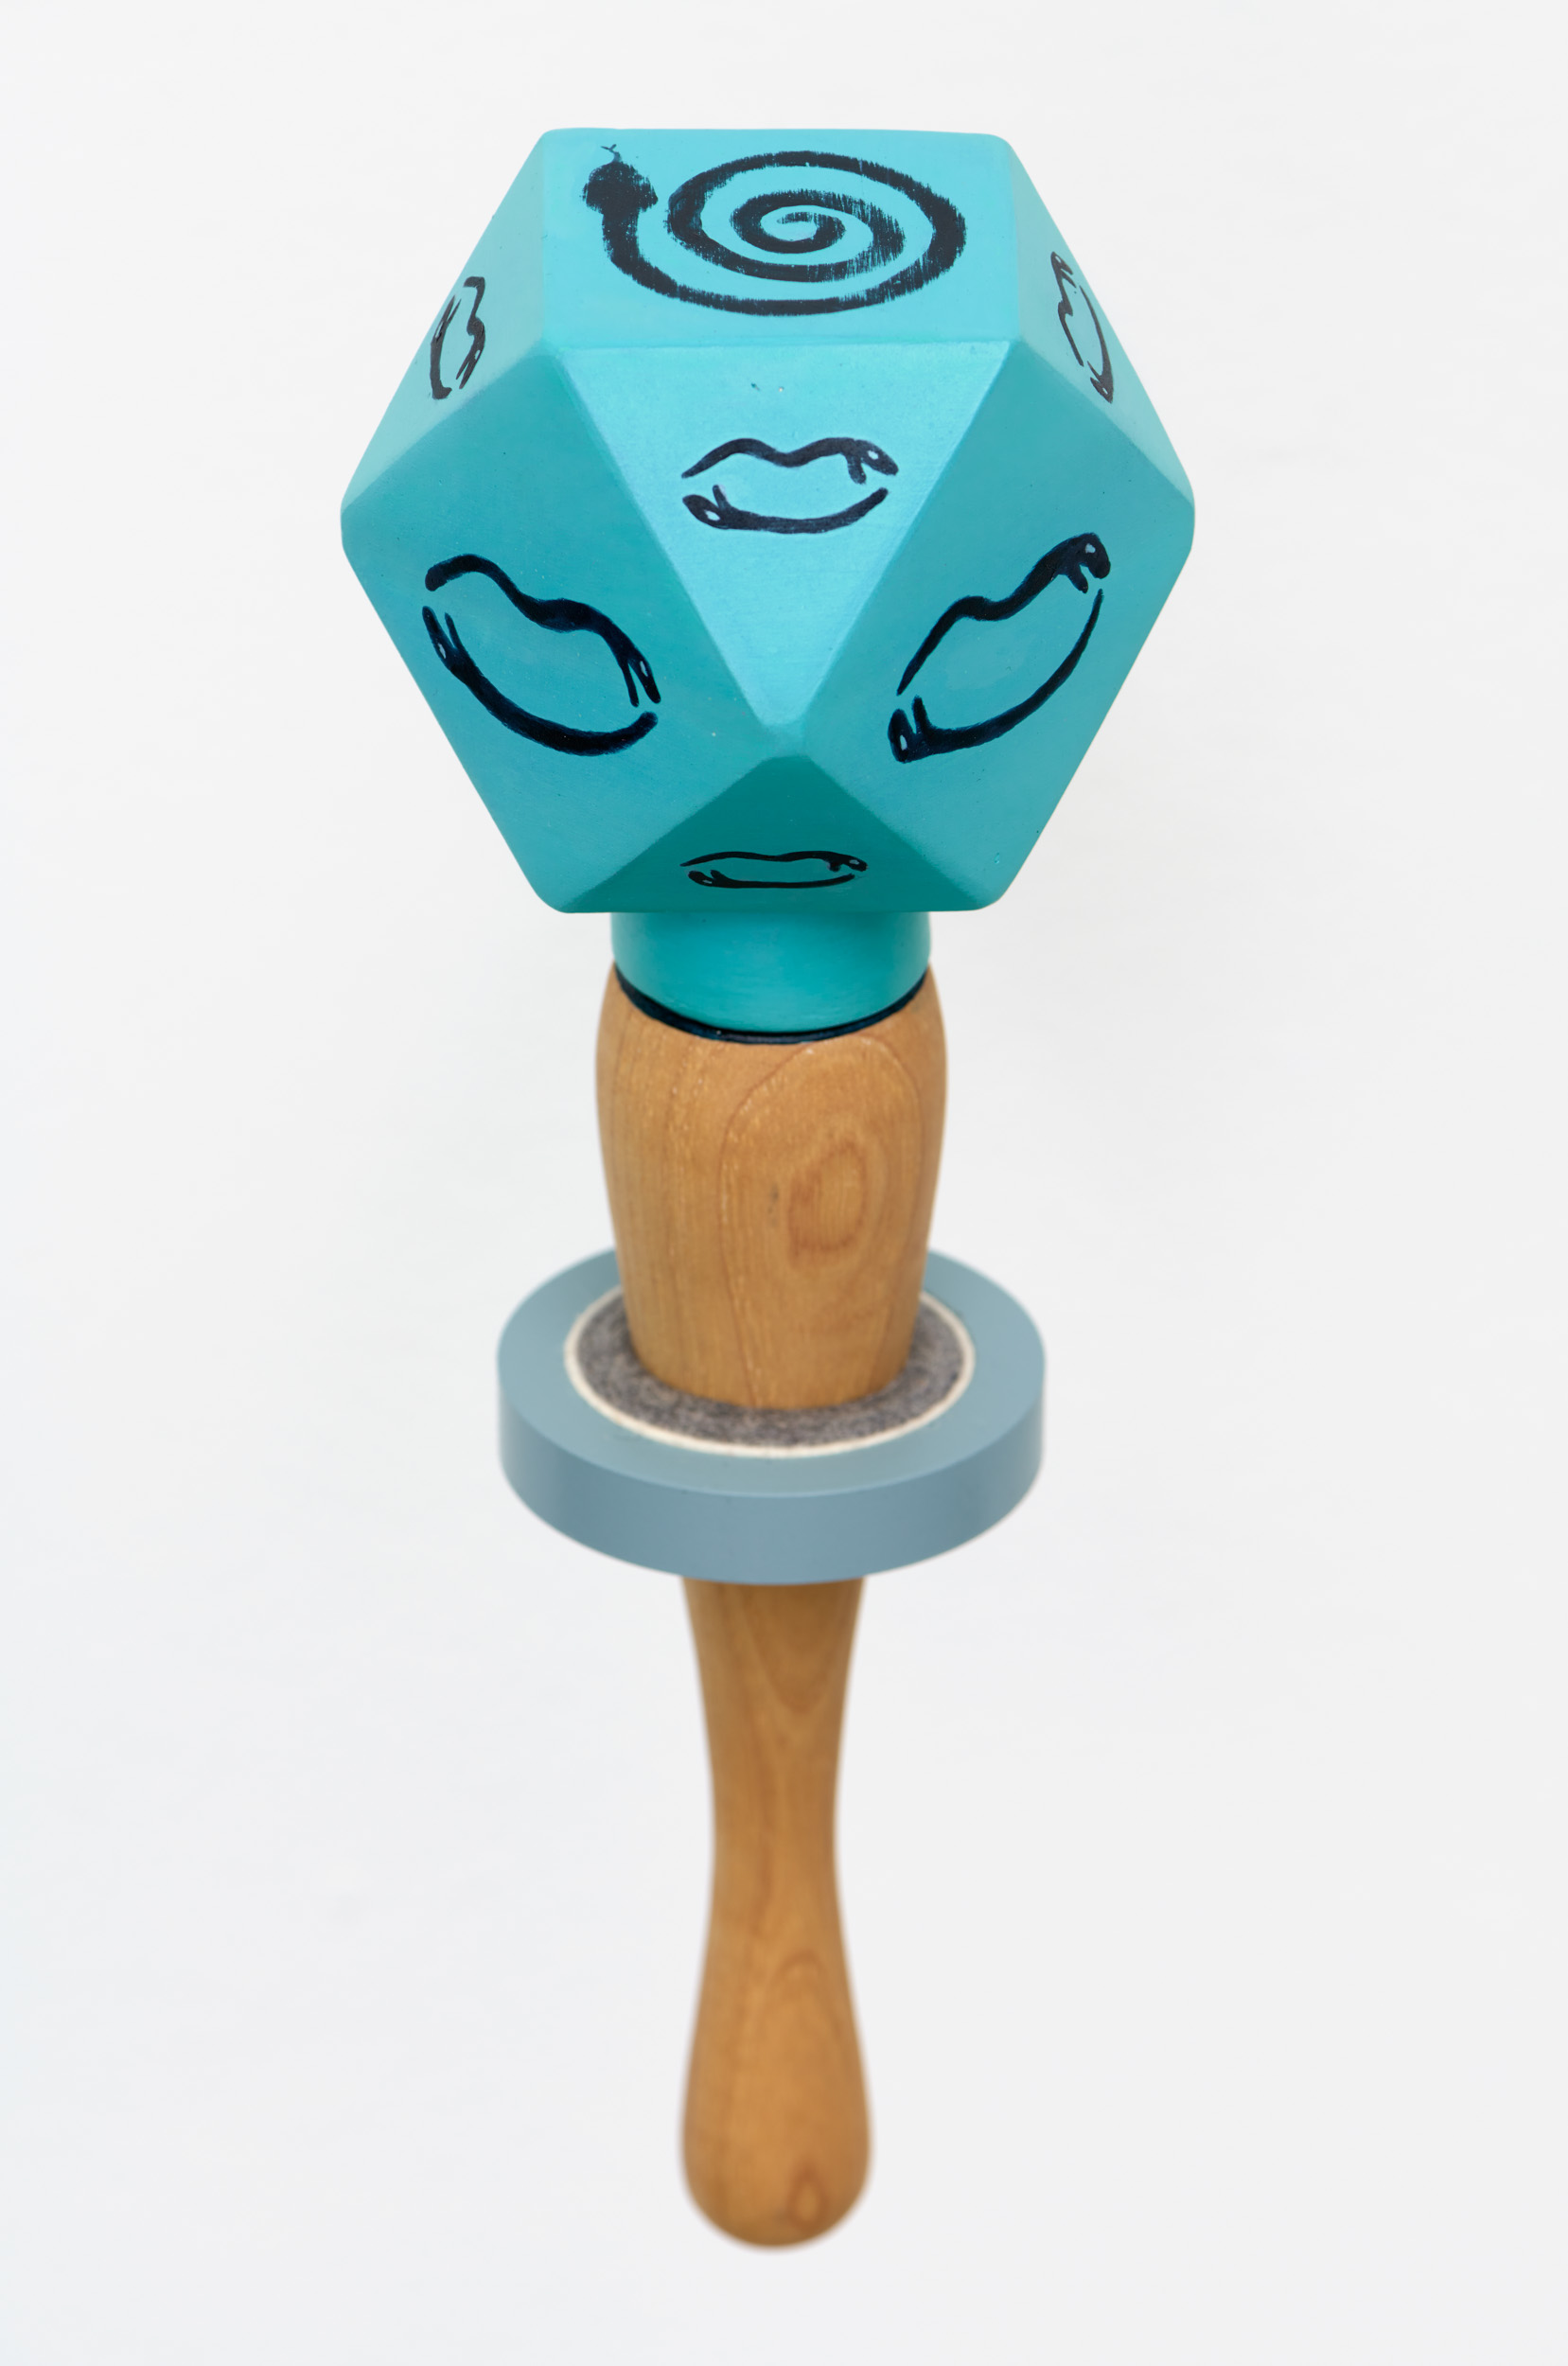 Detailed view of the top of a blue, multifaceted ceramic rattle with a wooden handle, revealing the image of a line drawing of a coiled snake on the top of the rattle.